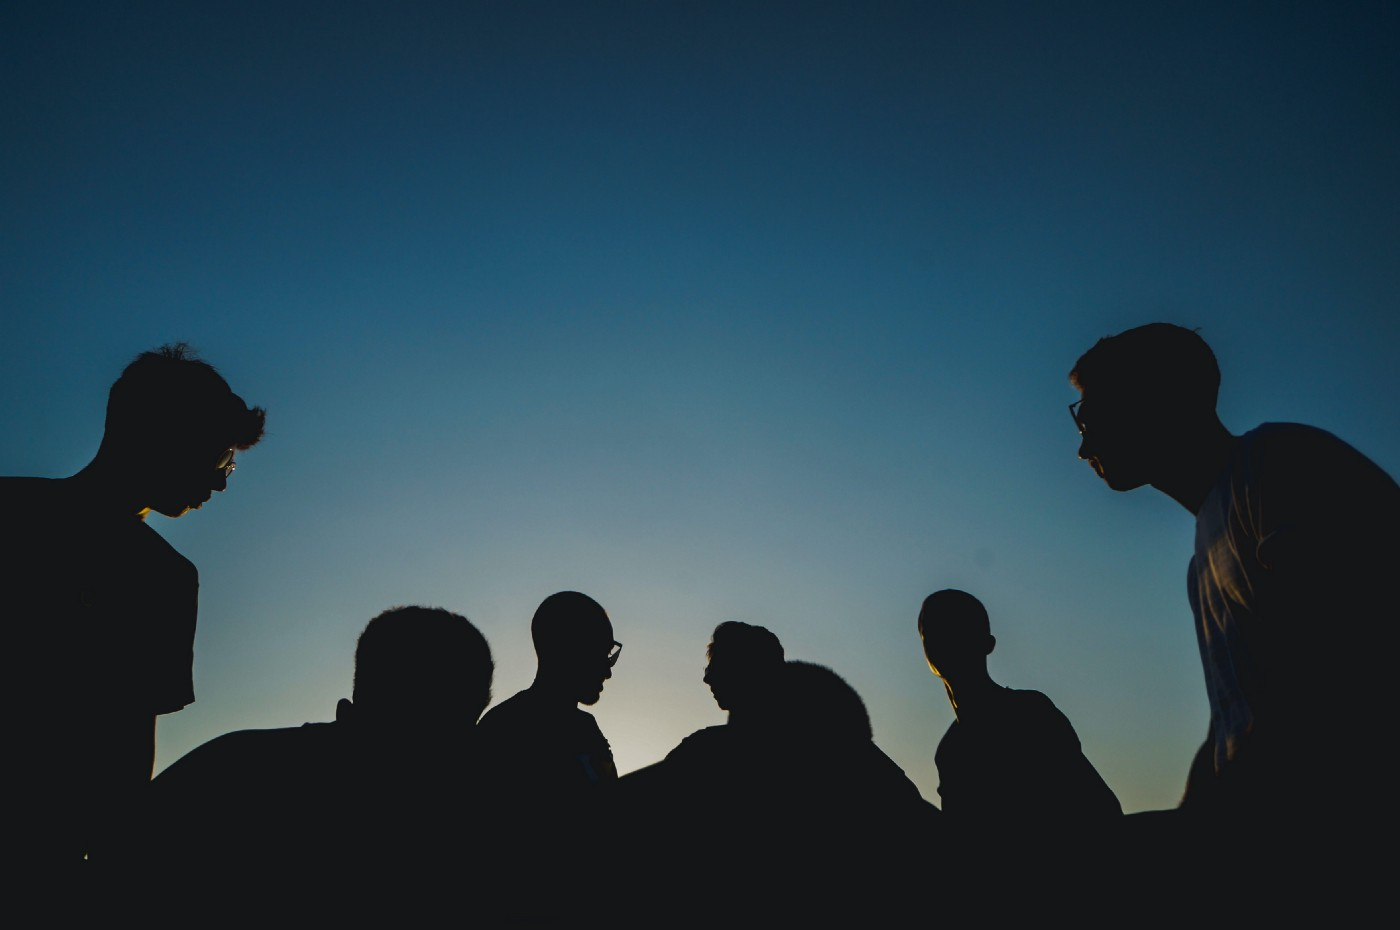 Silhouette of a group of people sat together (https://unsplash.com/@papaioannou_kostas)